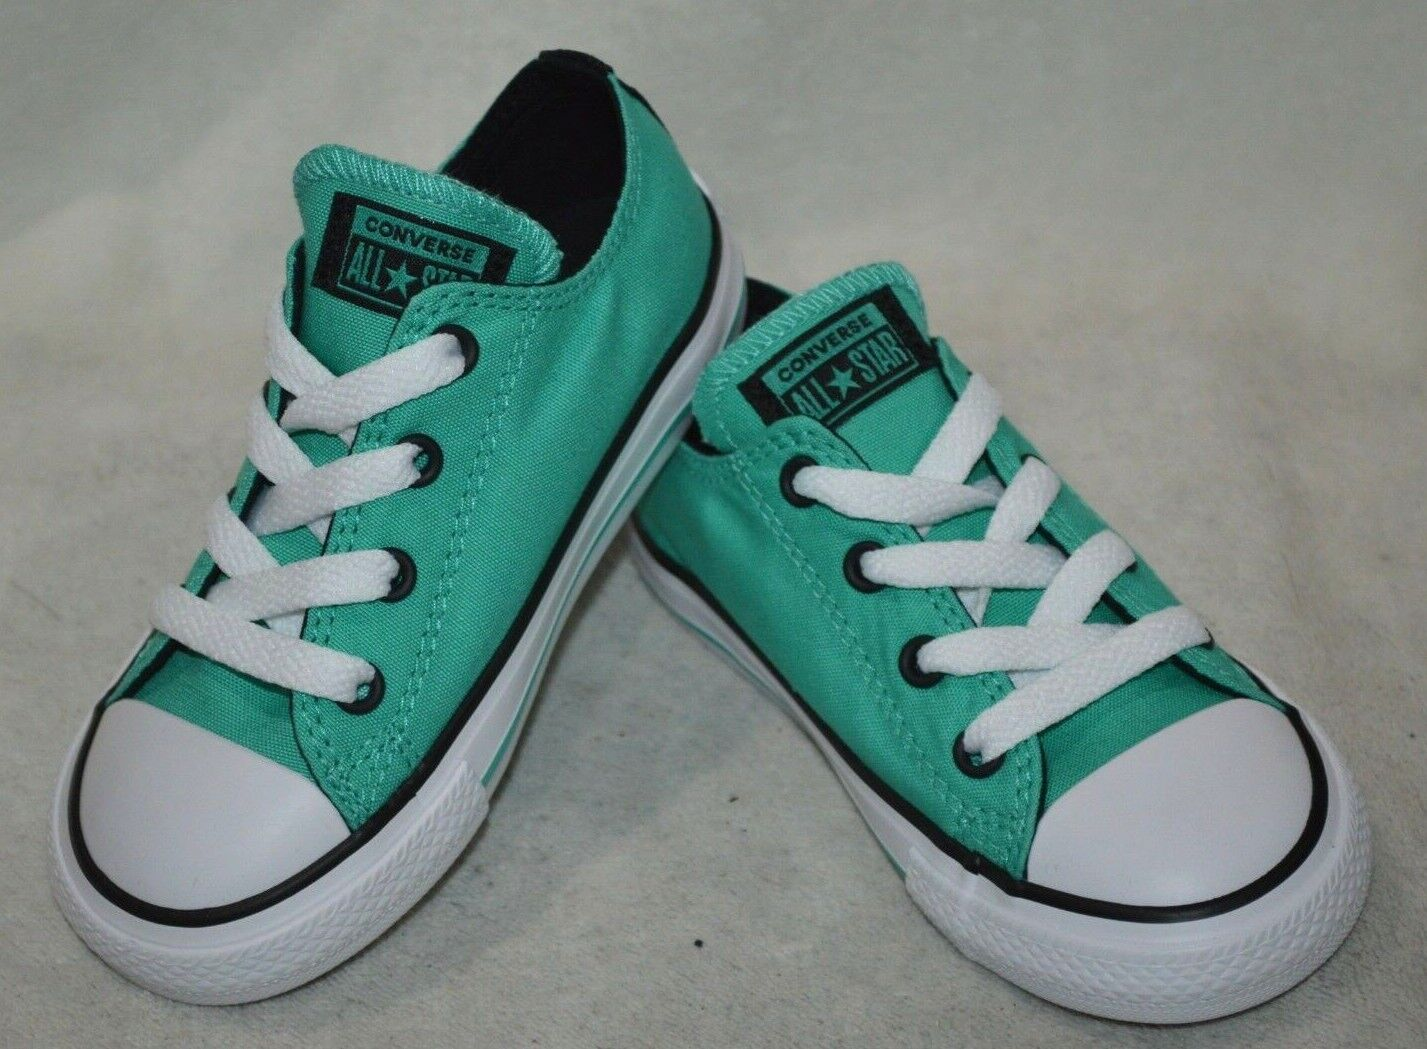 Converse® All Star CT OX P-Teal/Black/White Toddler Girl's Shoes- 6/7/8/9/10 NWB